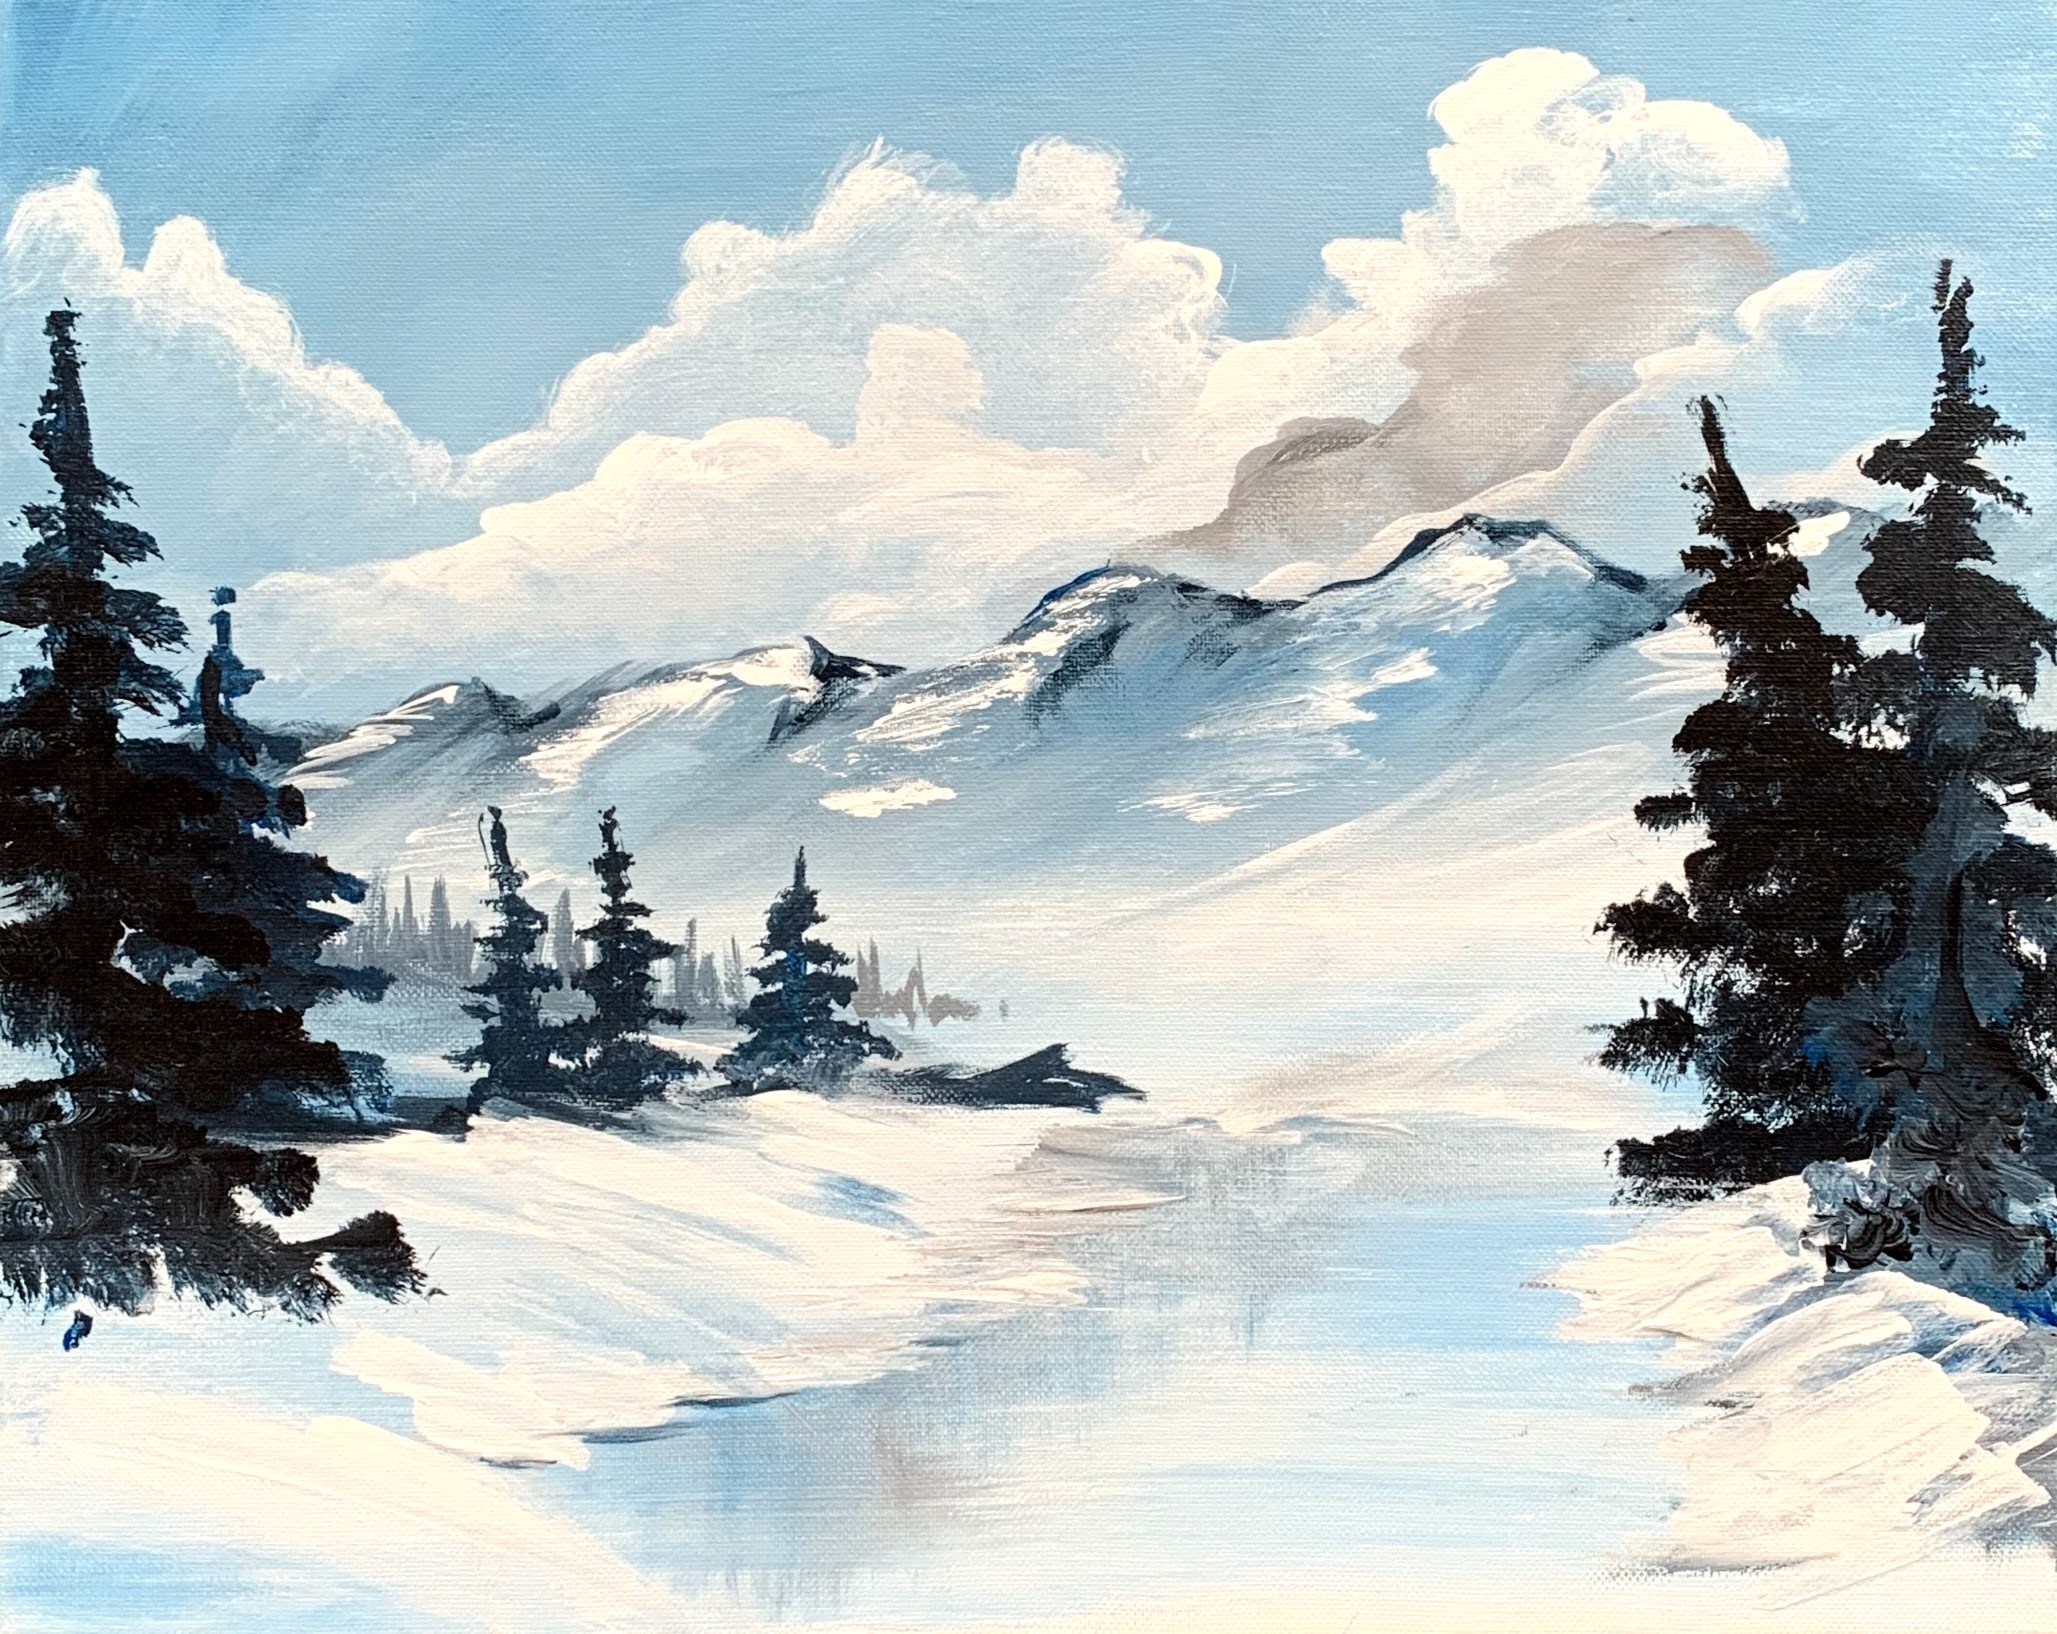 Mountains of Ice & Rivers| The Loaded Brush Paint & Sip Classes | loadedbrushpdx.com